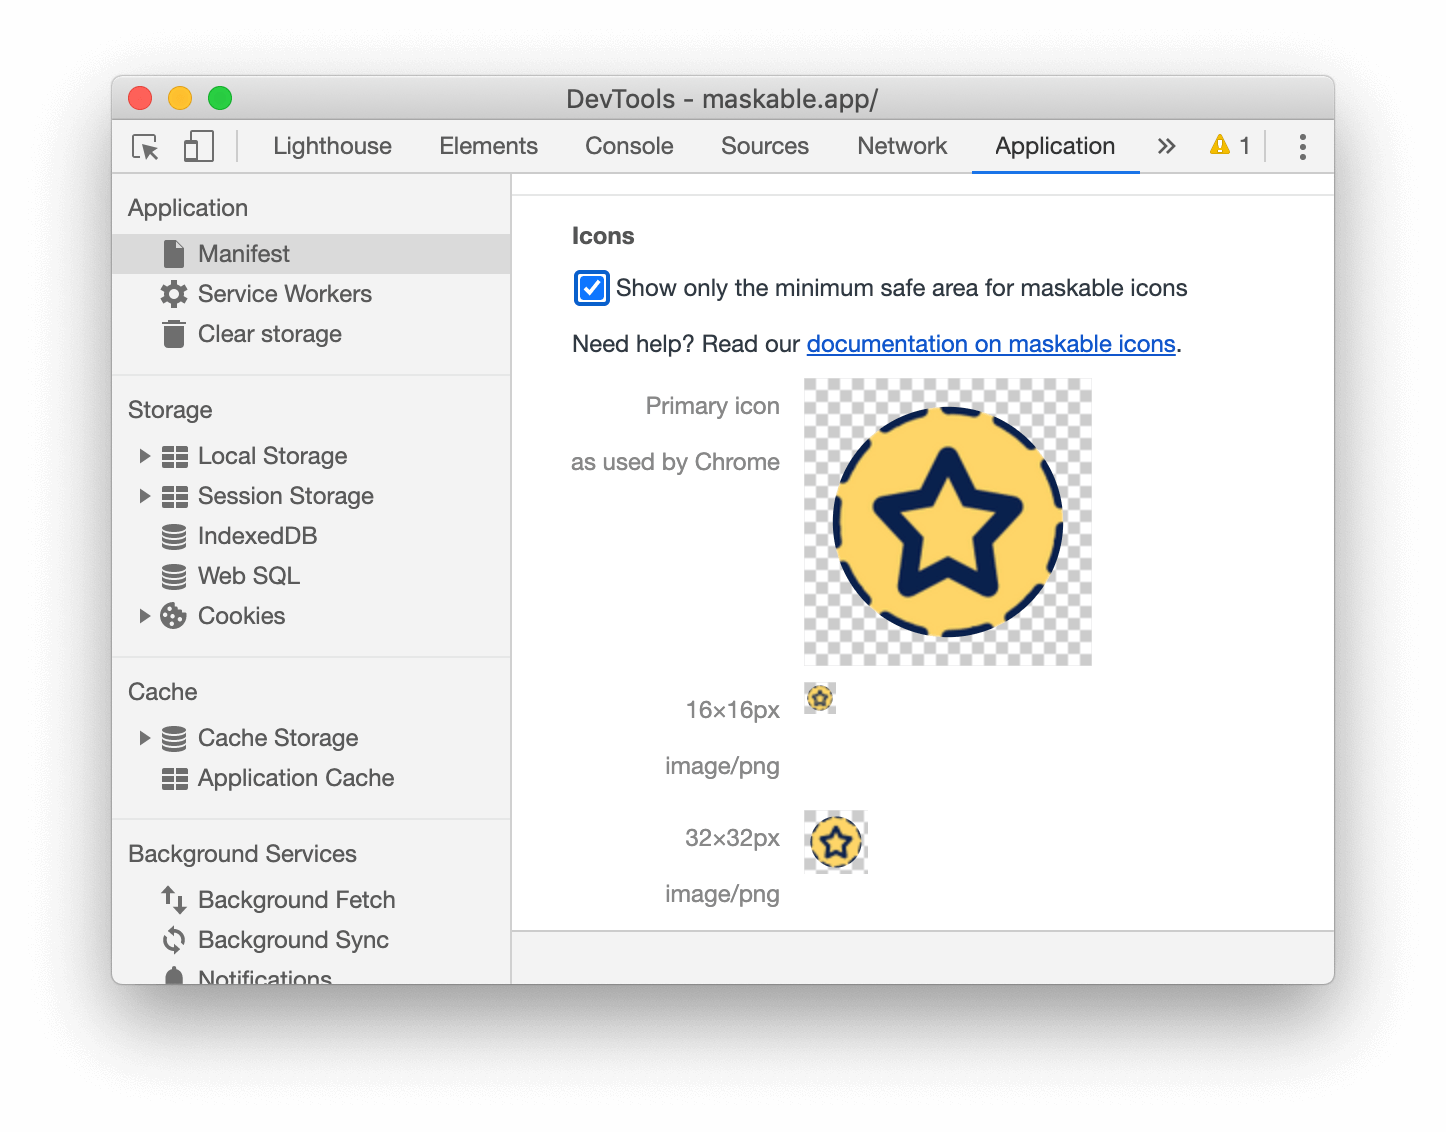 The 'Show only the minimum safe area for maskable icons' checkbox